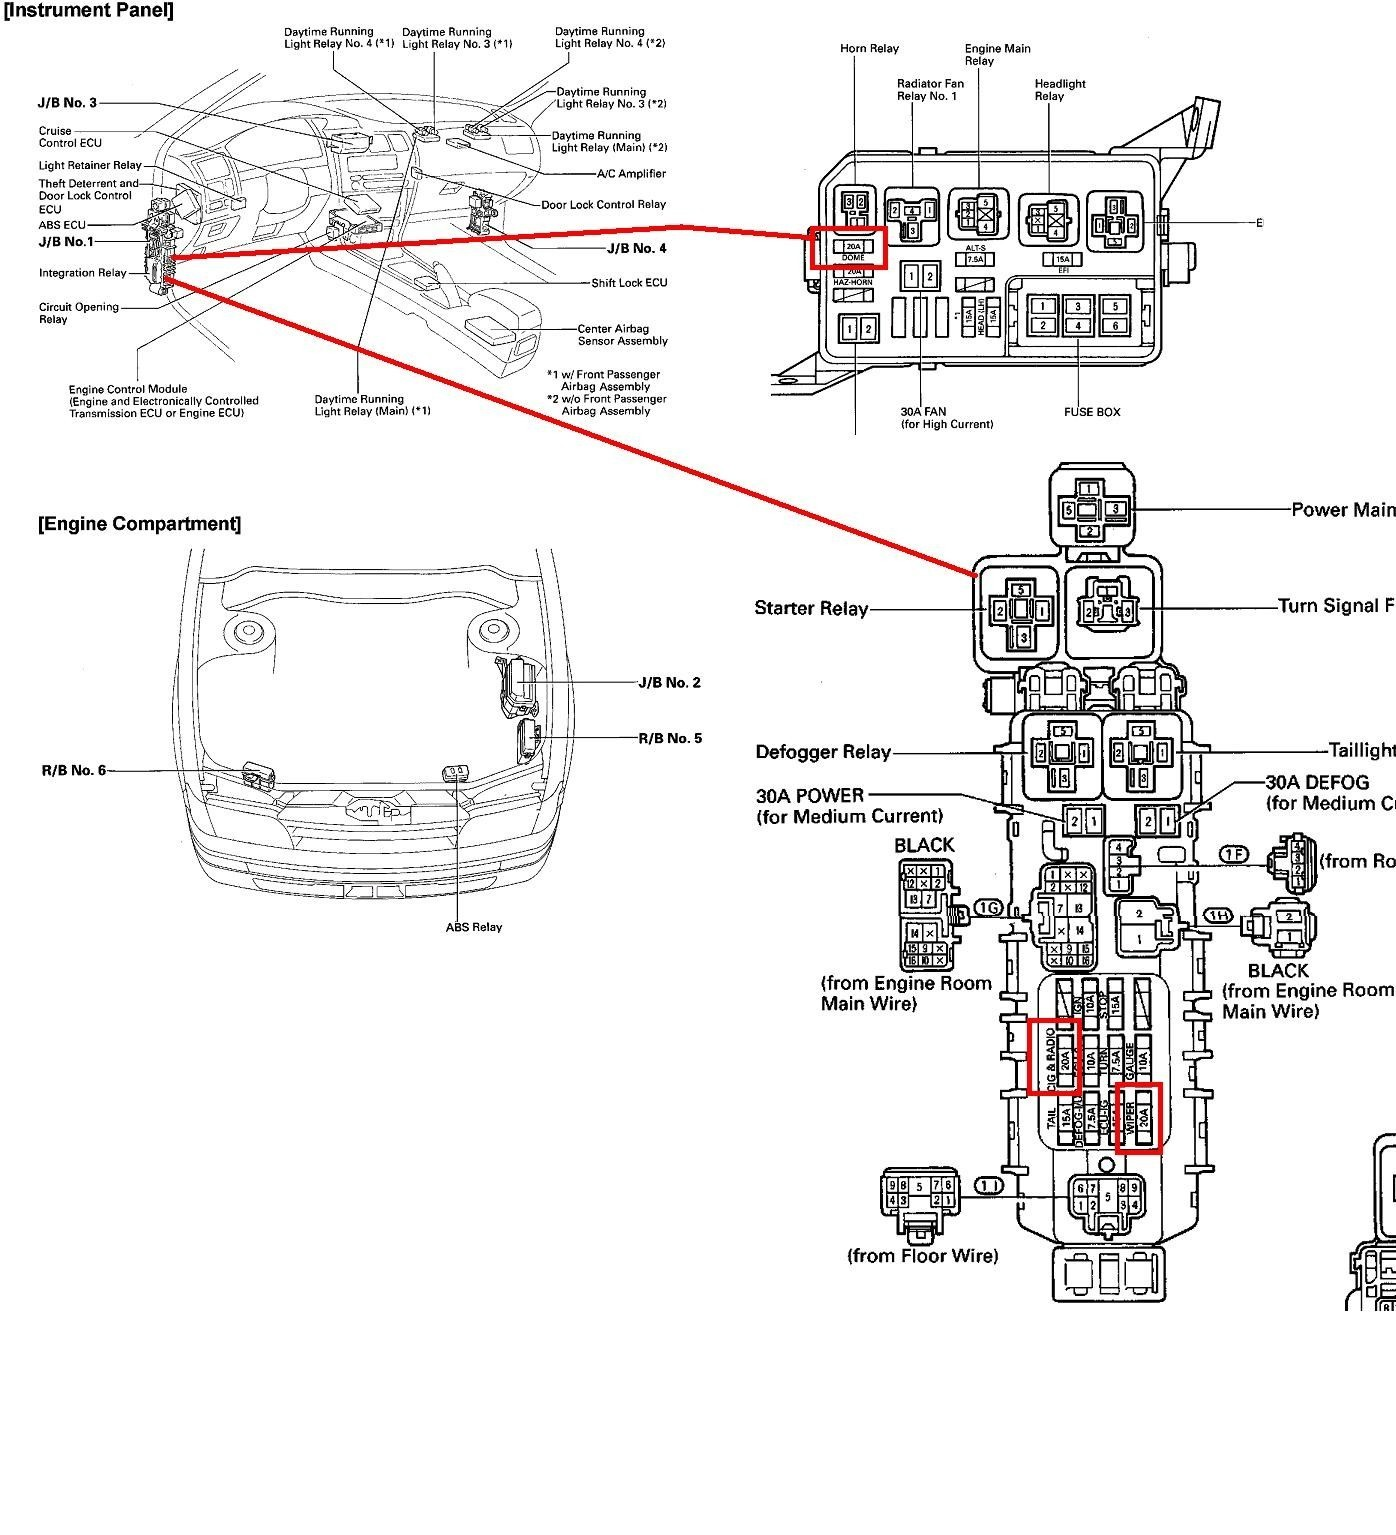 hight resolution of 2000 avalon fuse box wiring diagram inside wiring diagram 2000 toyota avalon vacuum diagram 2001 toyota avalon